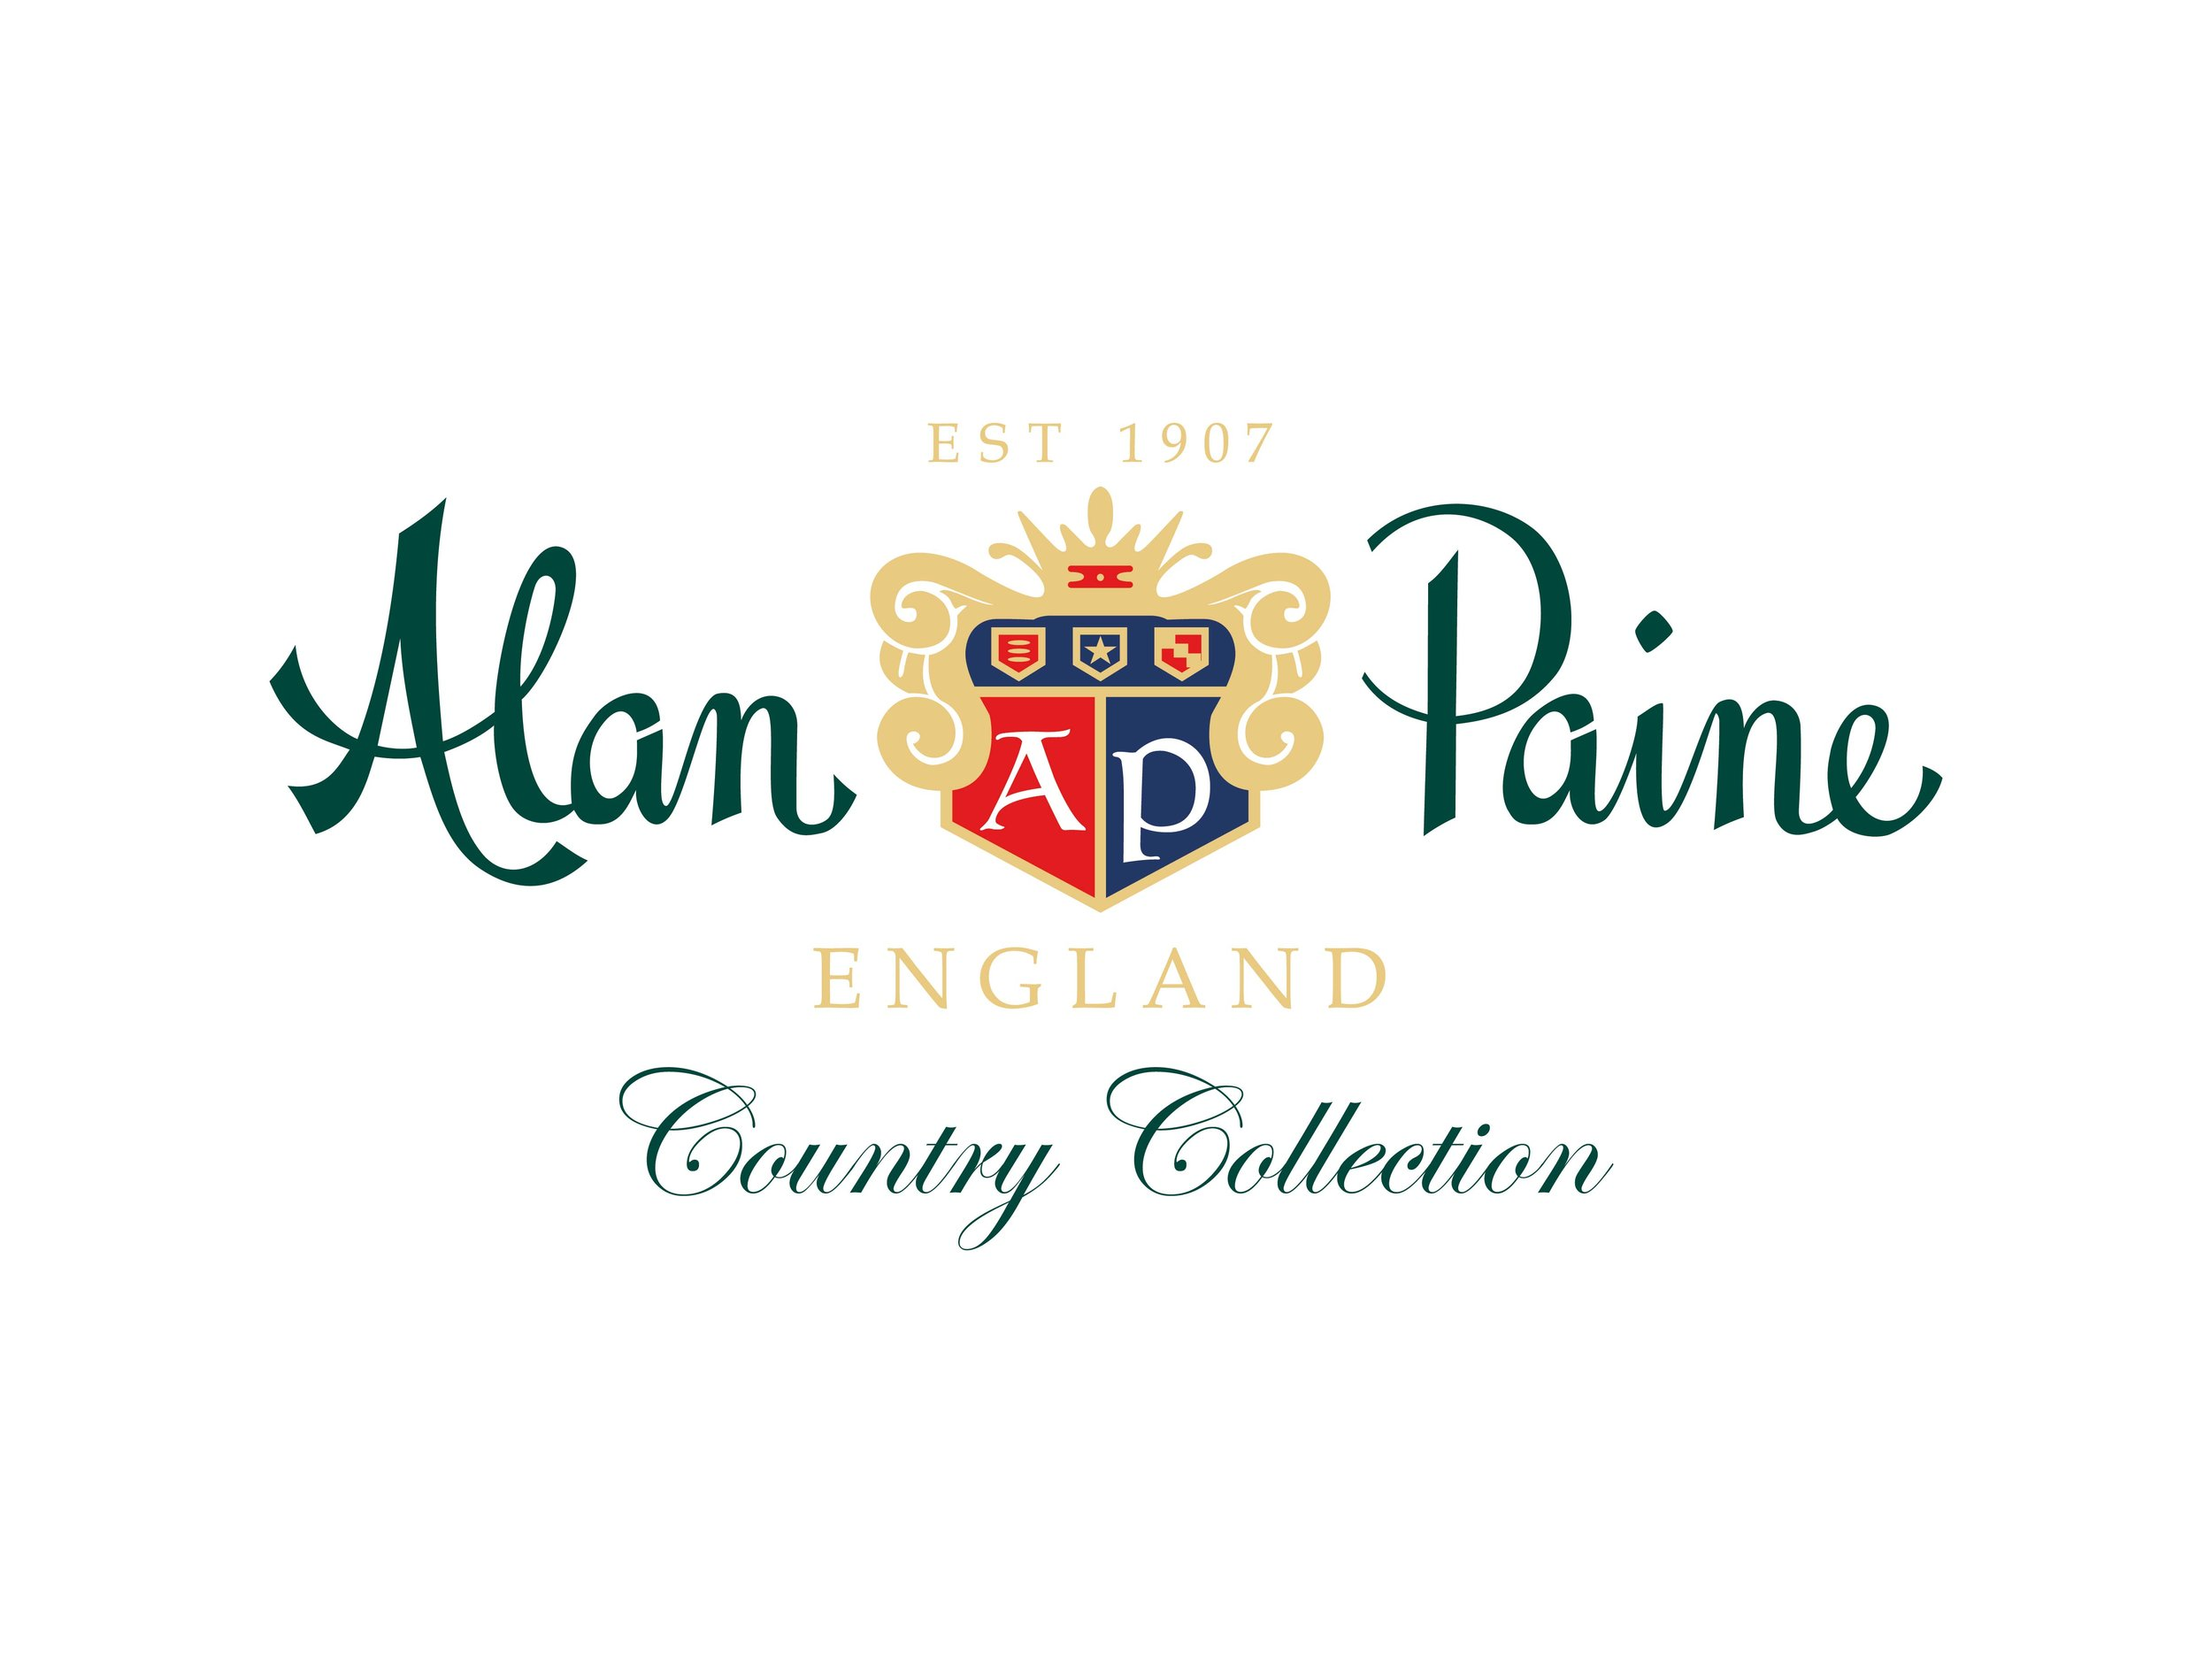 Alan Paine Logo Band Row2 Export.jpg